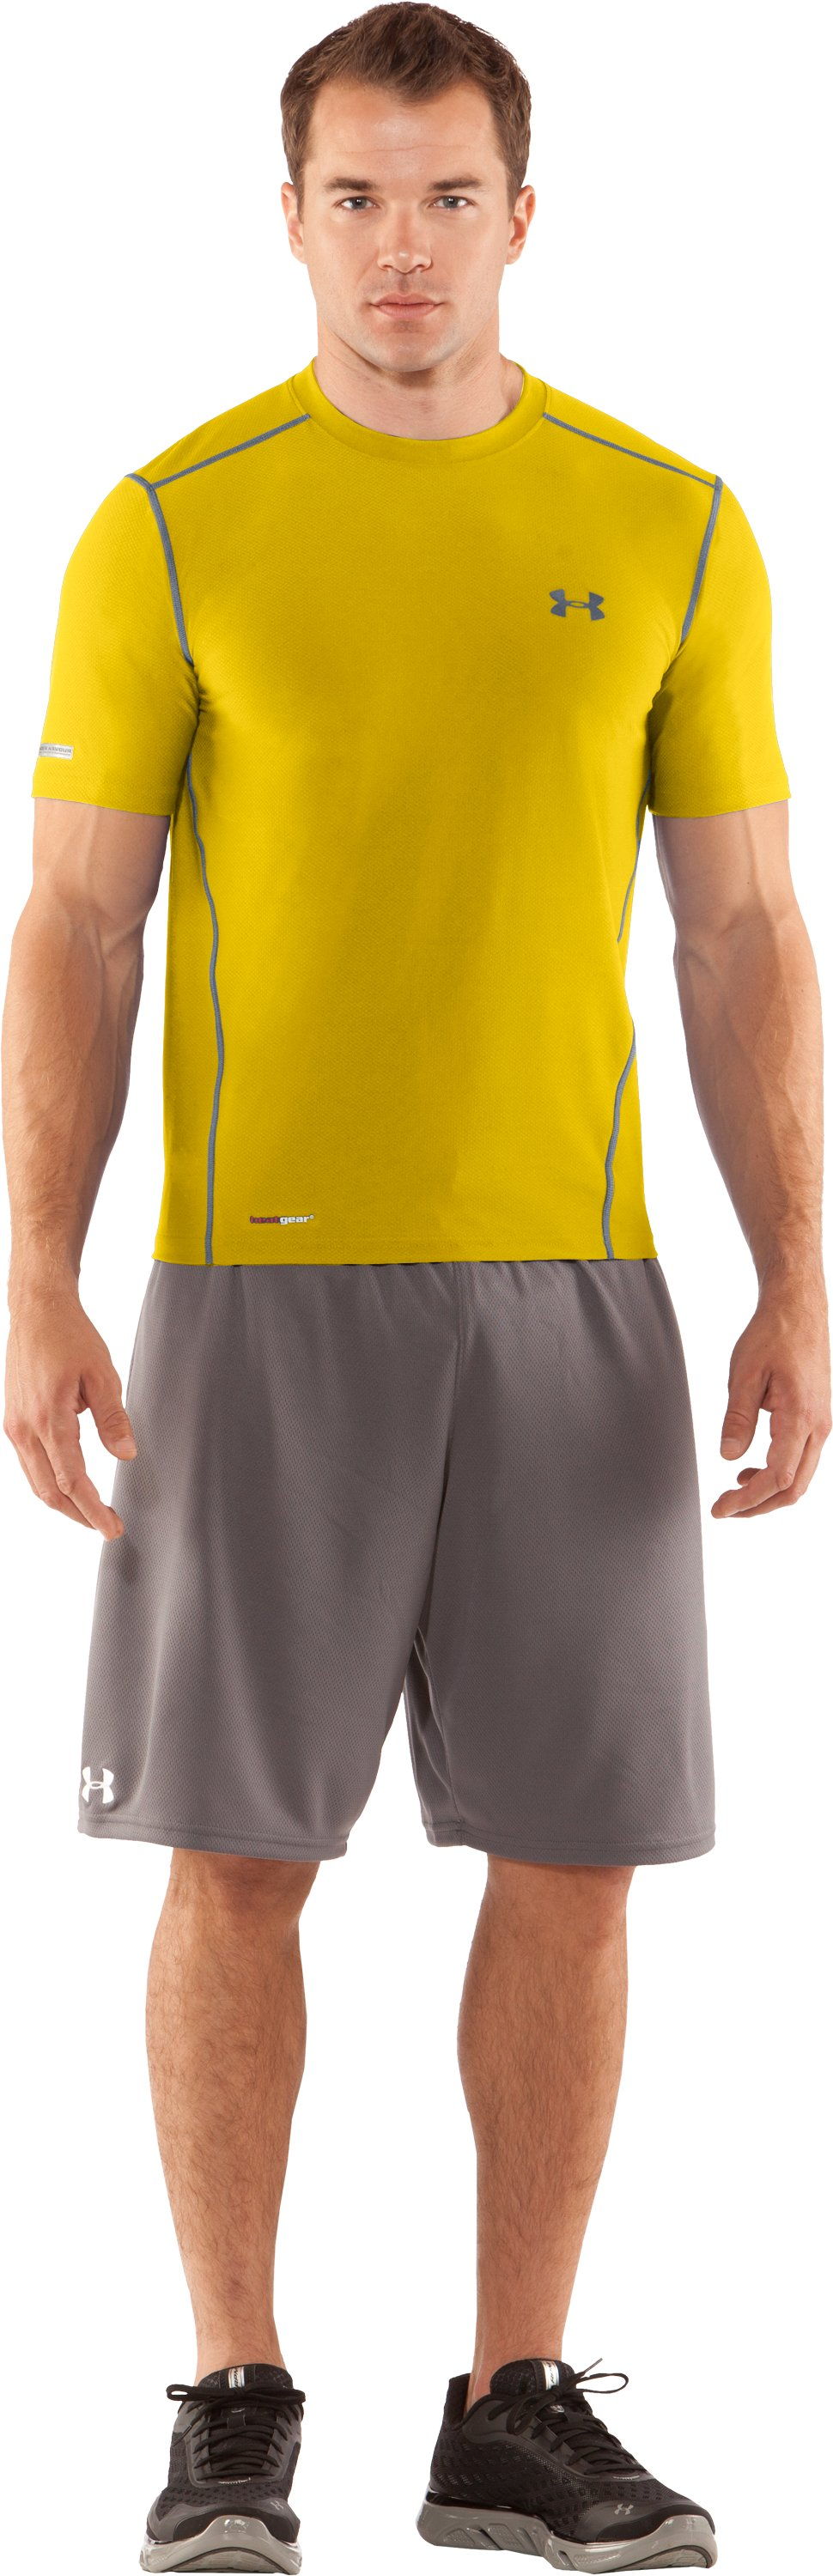 Men's HeatGear® Fitted Short Sleeve Crew, Taxi, Front